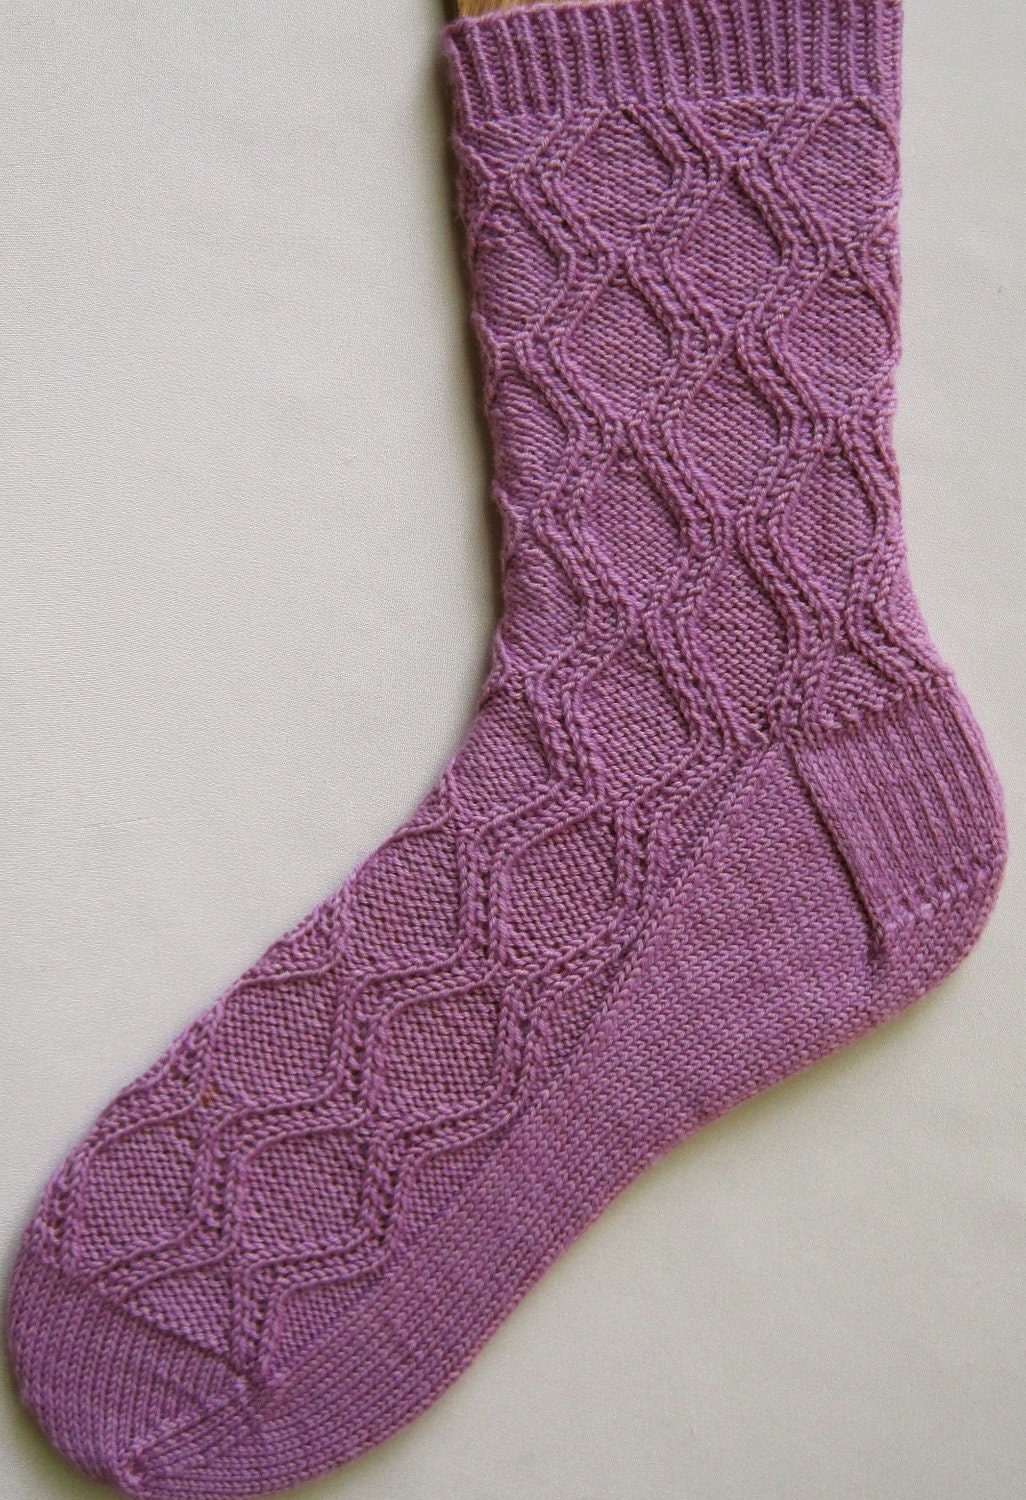 Sock Pattern Knitting : Knit Sock Pattern: Hourglass Socks